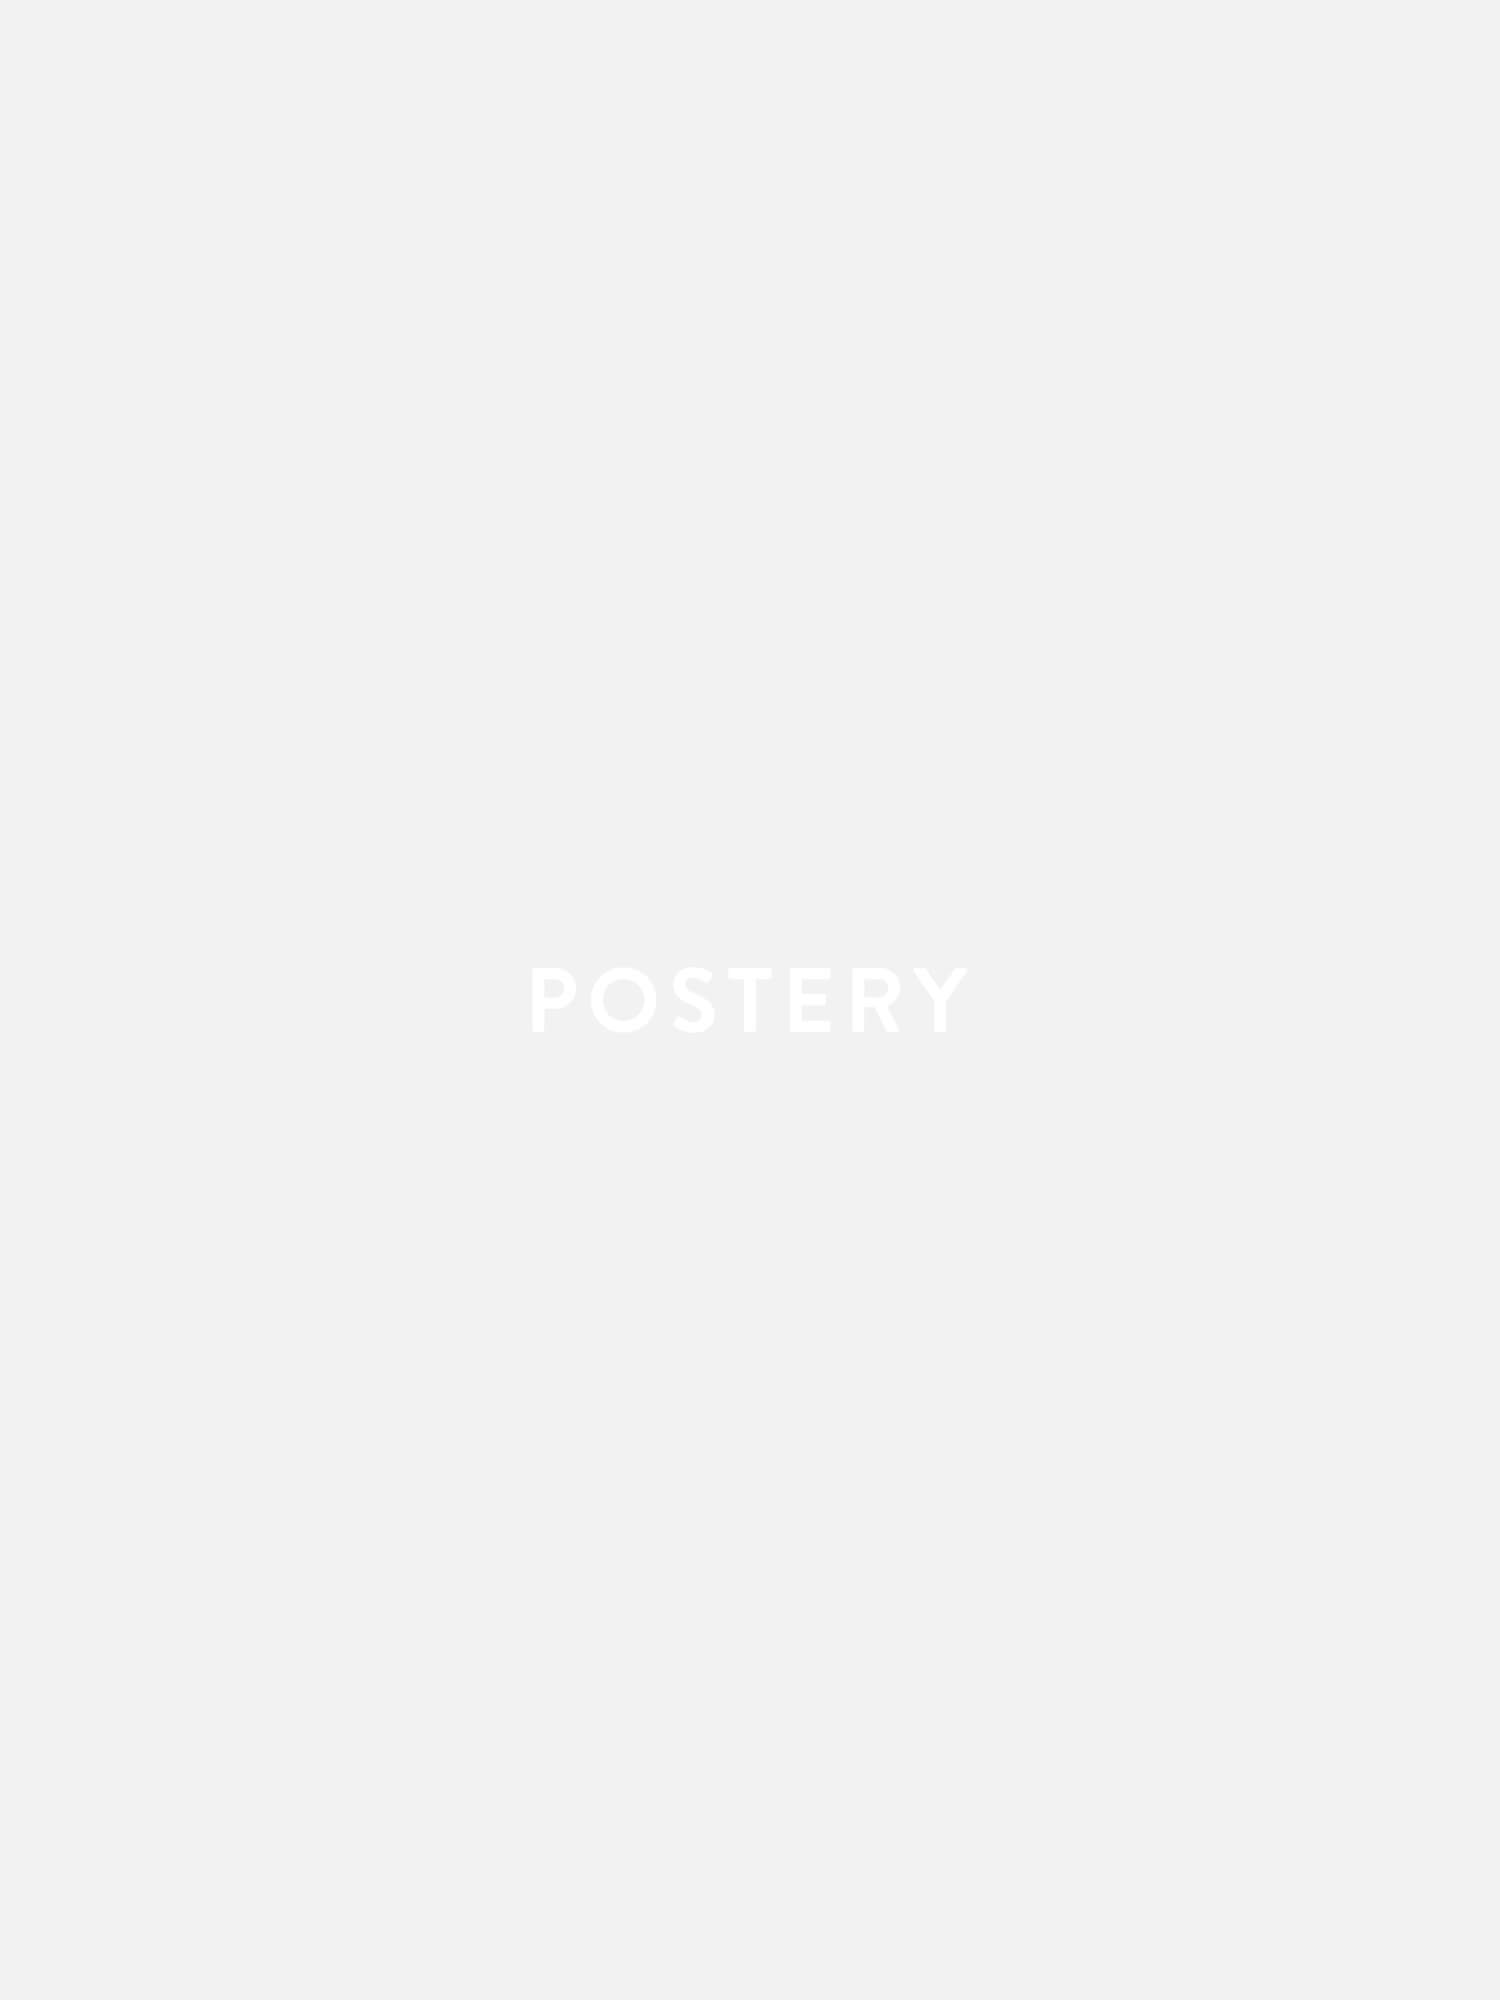 Black Staircase Poster